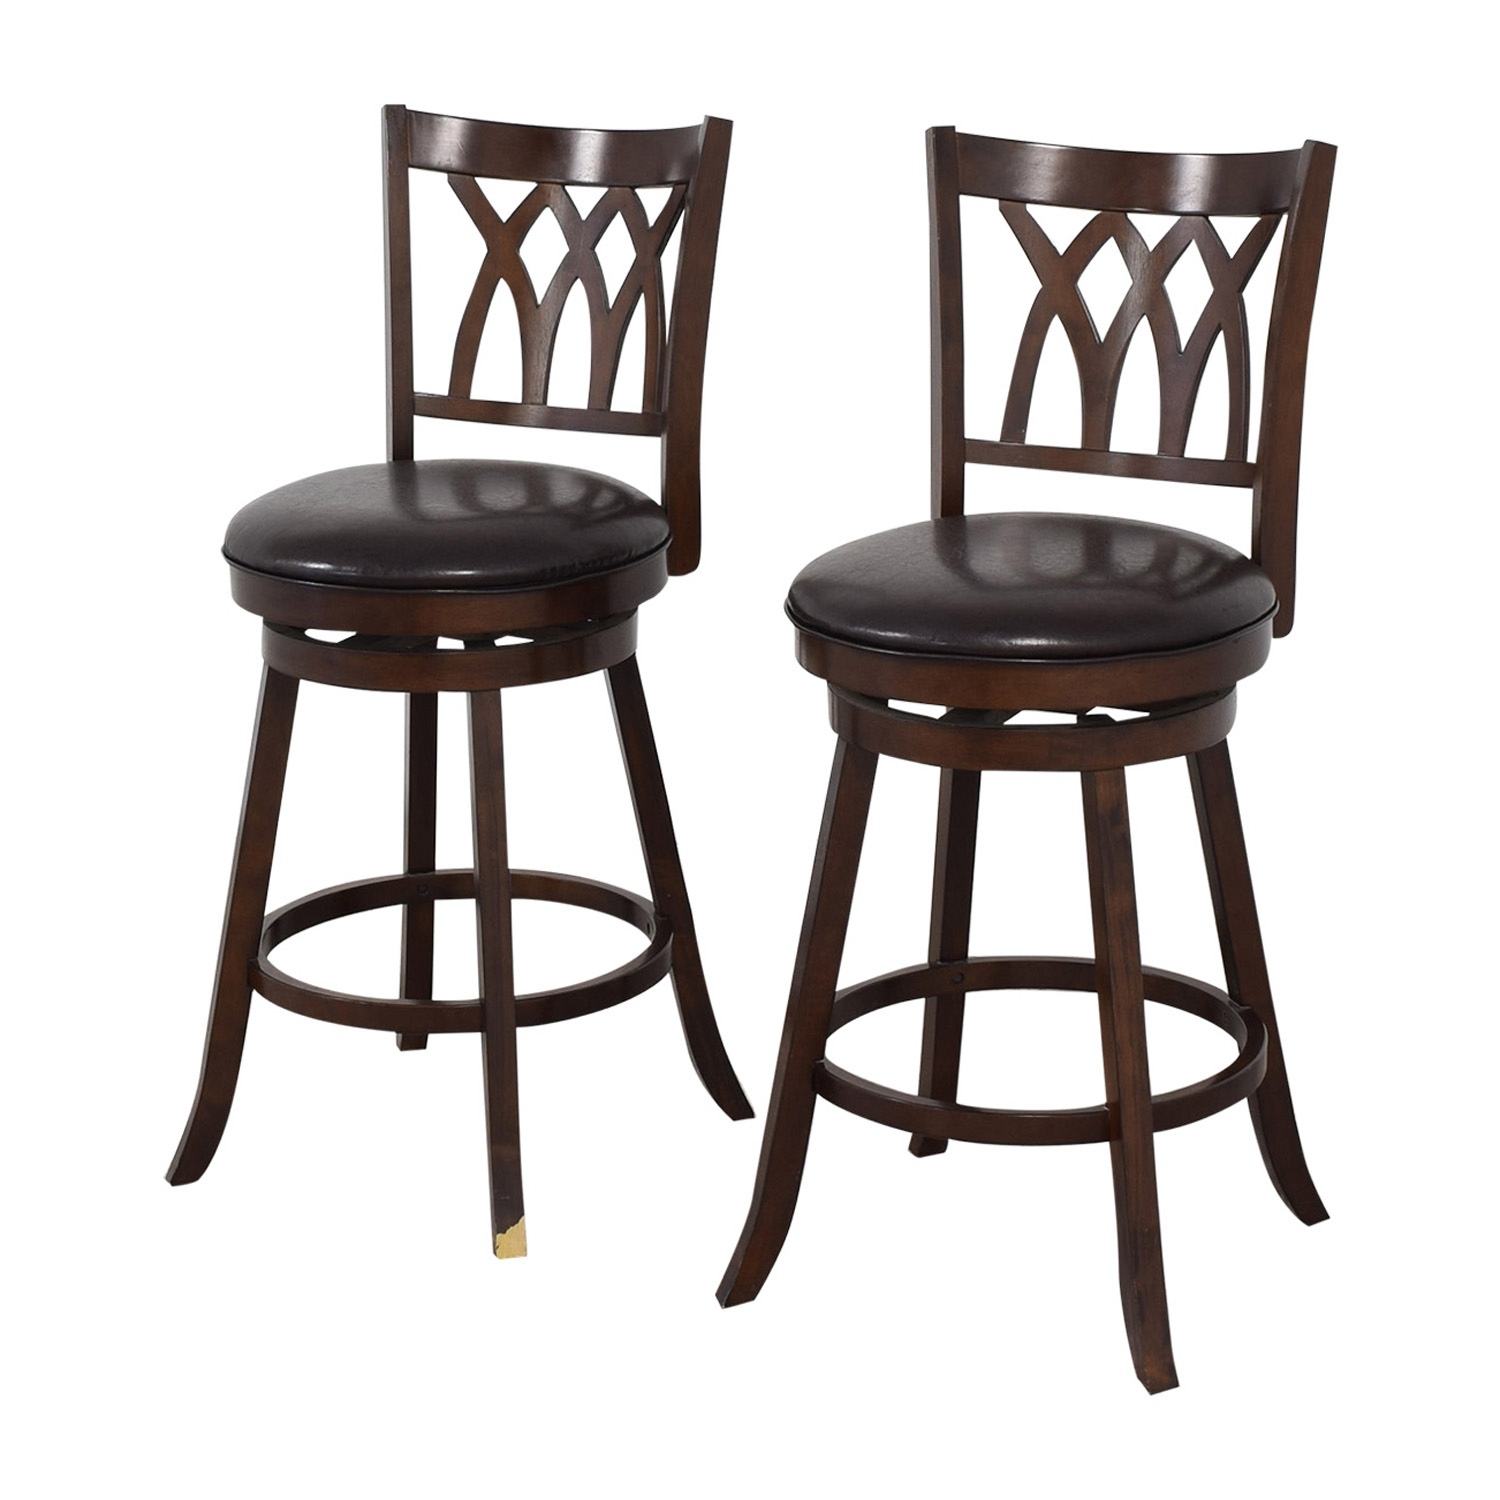 Counter Height Swivel Bar Stools sale